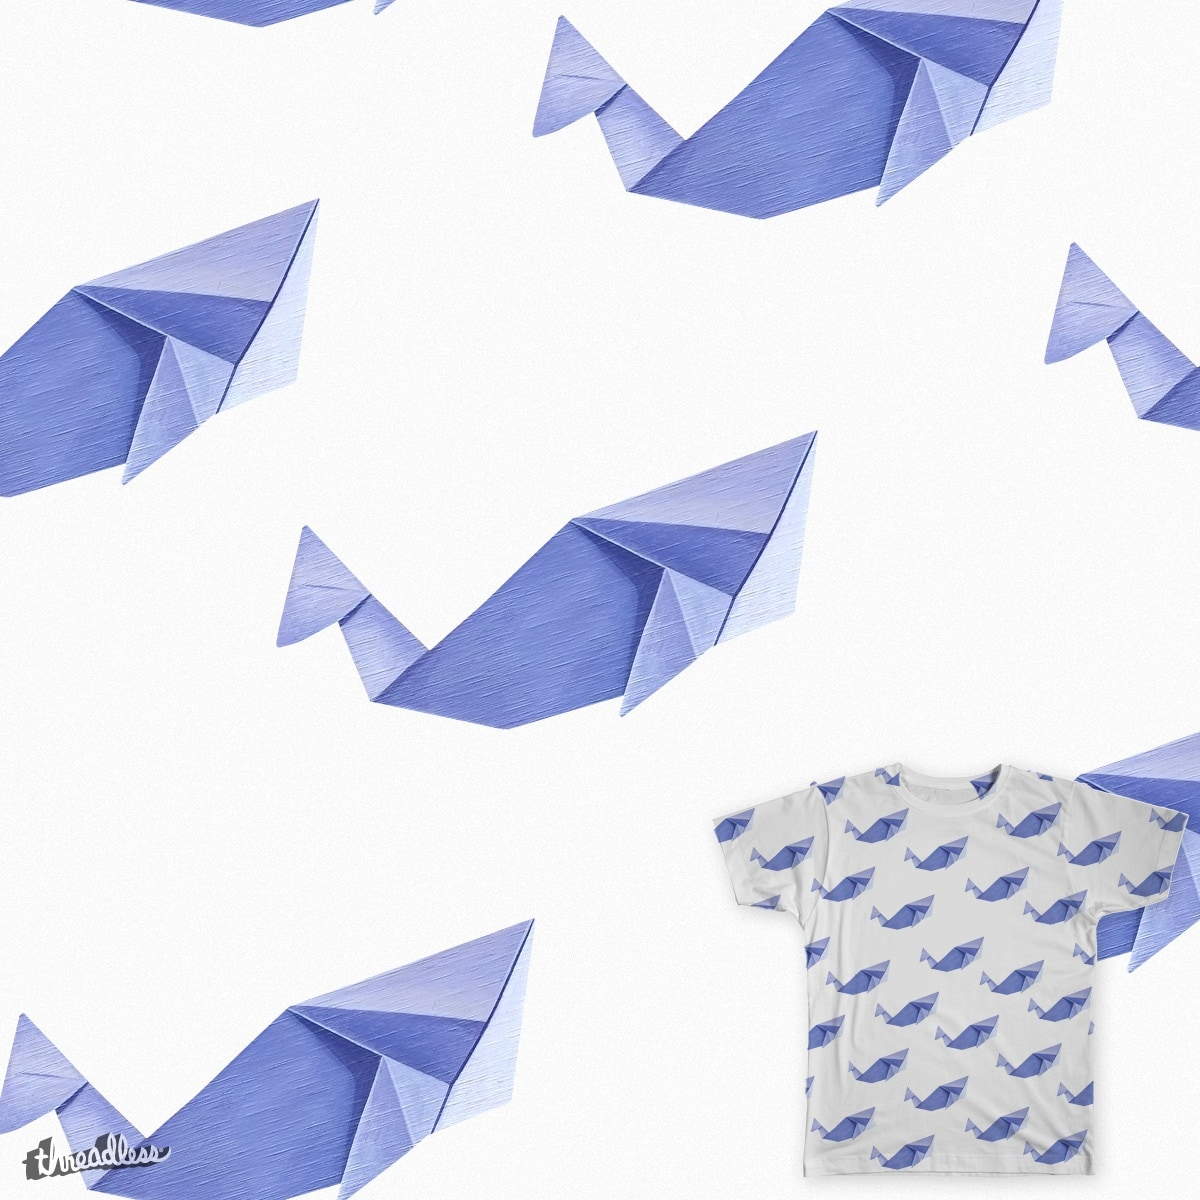 Origami whale by Nuviart_ on Threadless